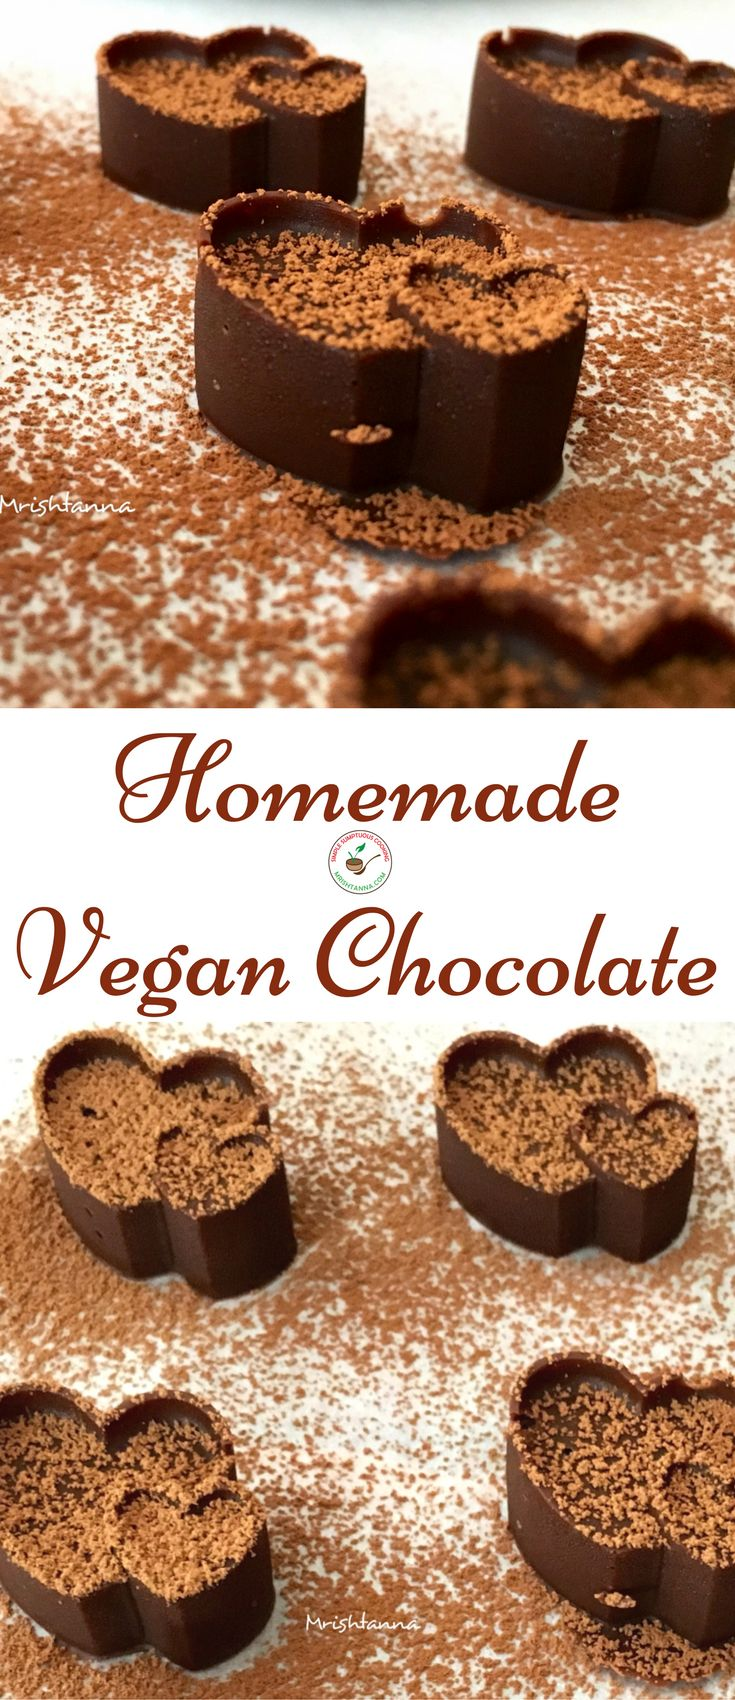 Welcome to Simple Sumptuous Cooking, a vegan cooking blog! Here's a quick recipe for Homemade Vegan Chocolate.